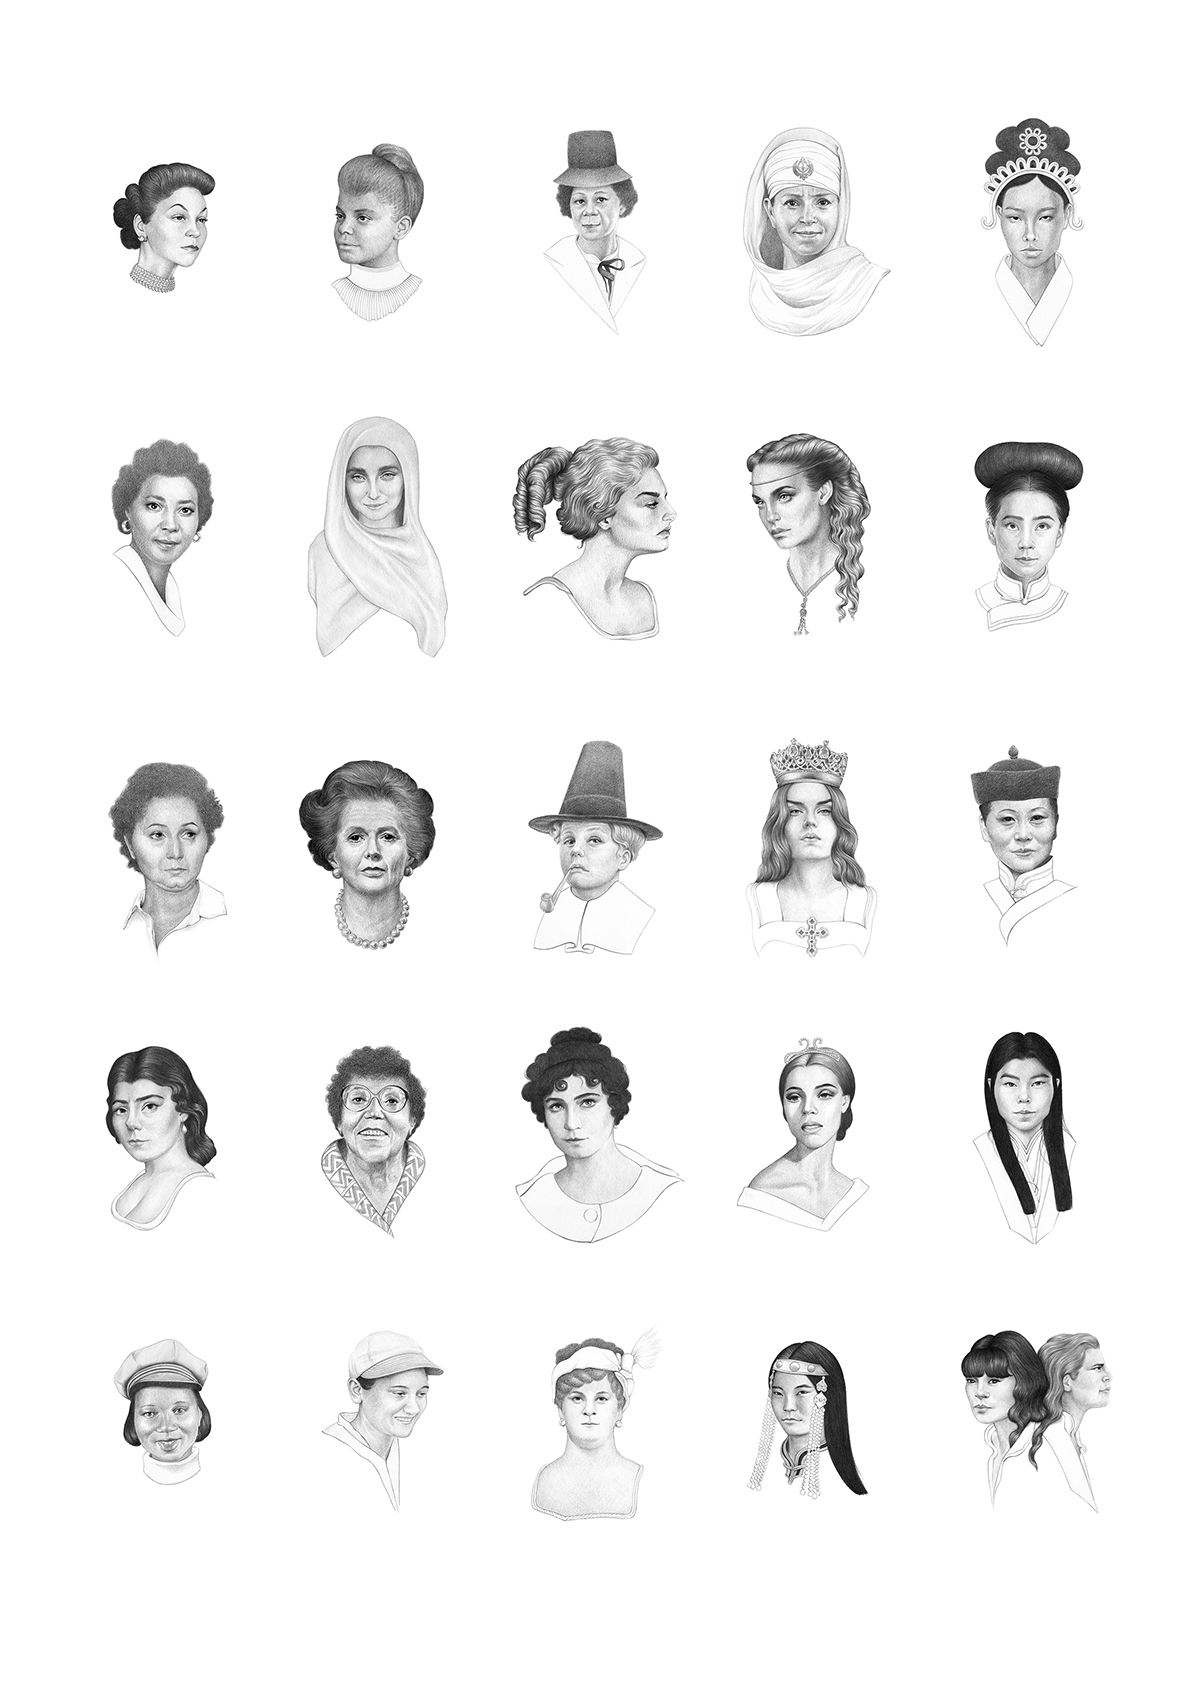 All_Portraits_historyvwomen_m.jpg